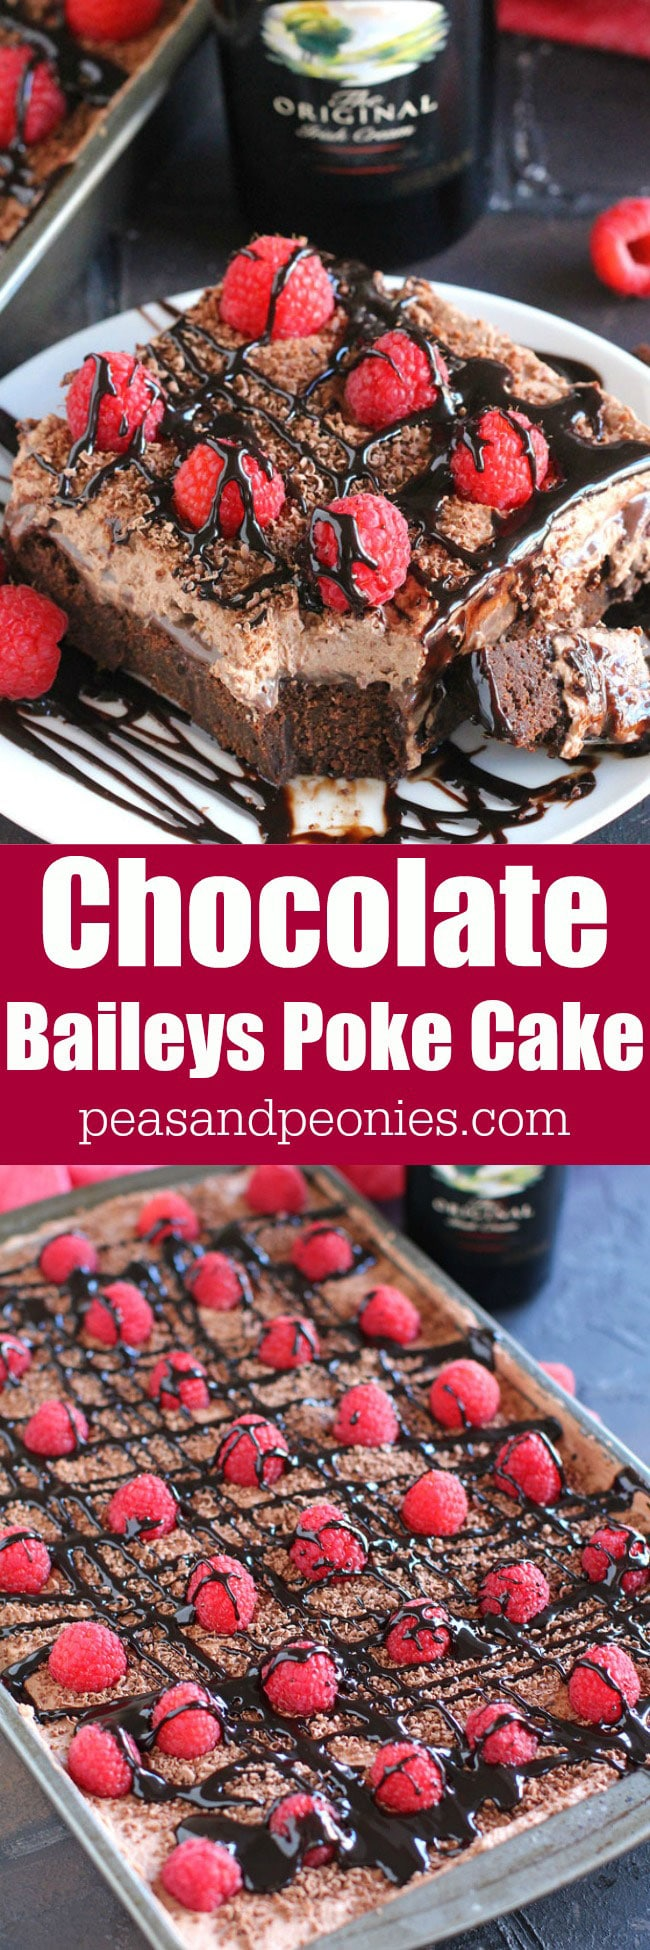 This delicious Chocolate Baileys Poke Cake has Baileys in the batter and in the chocolate sauce, topped with Baileys Chocolate Whipped Cream!